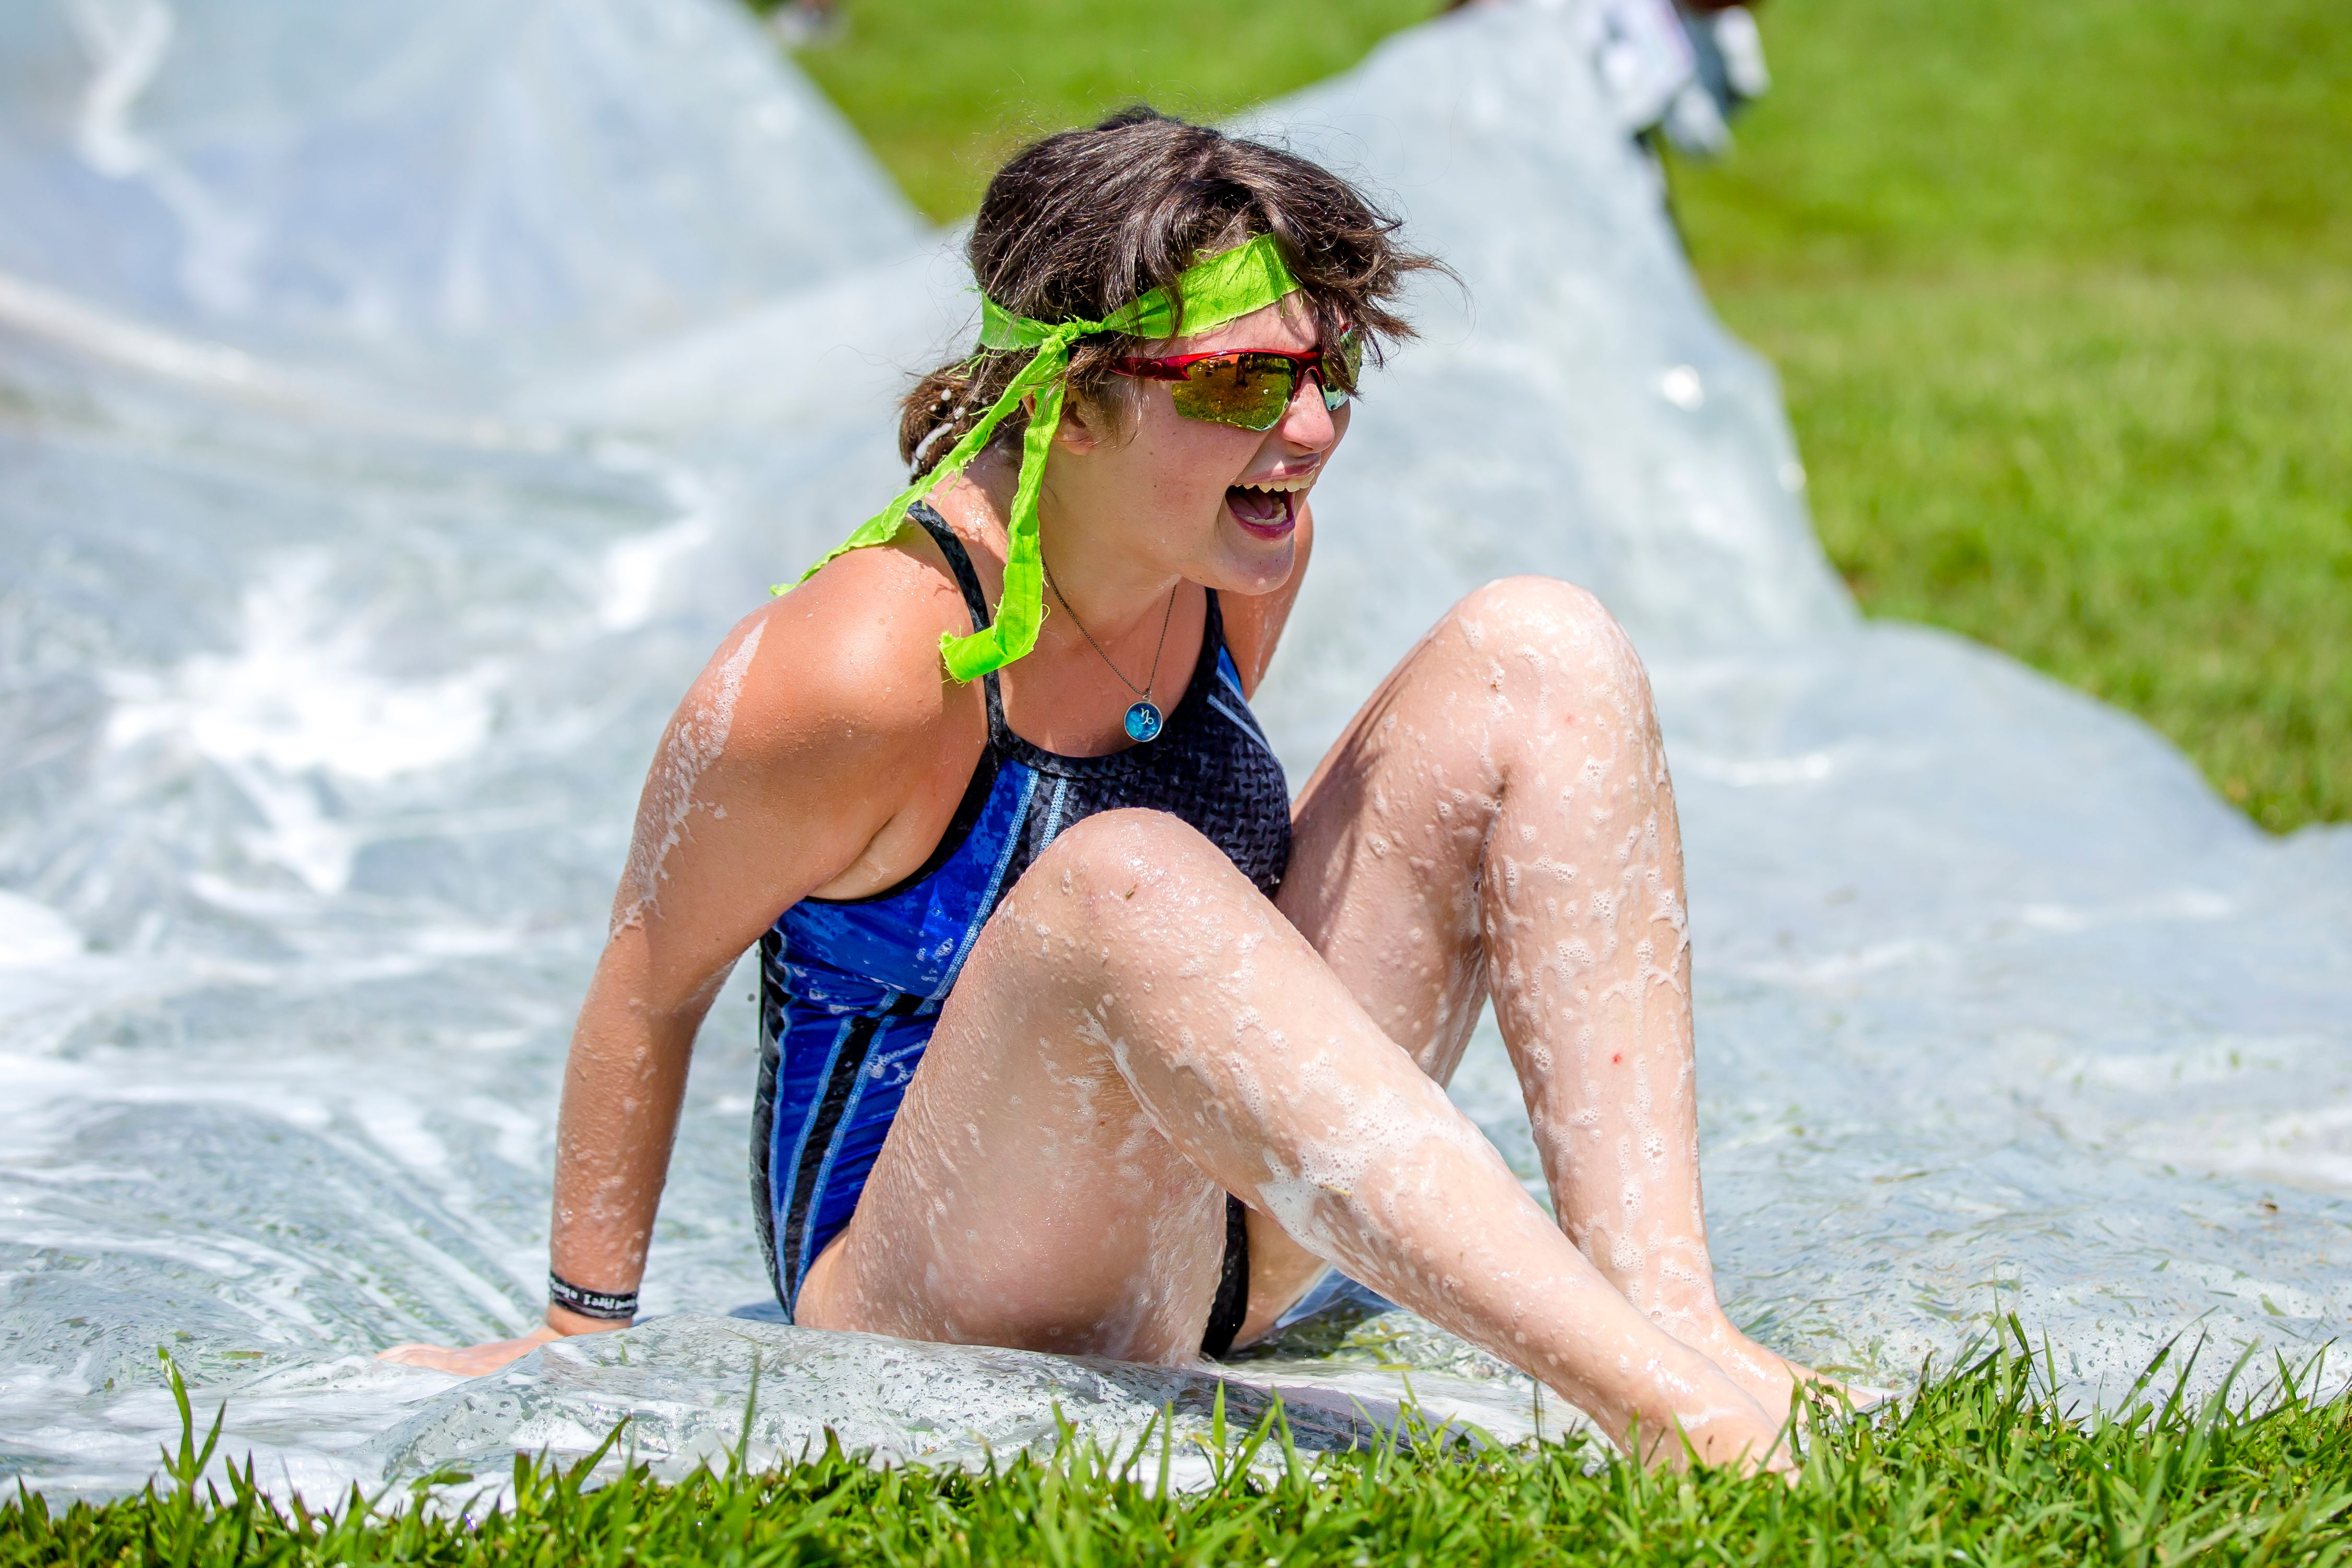 A camper laughs after enjoying a ride down the slip-n'-slide